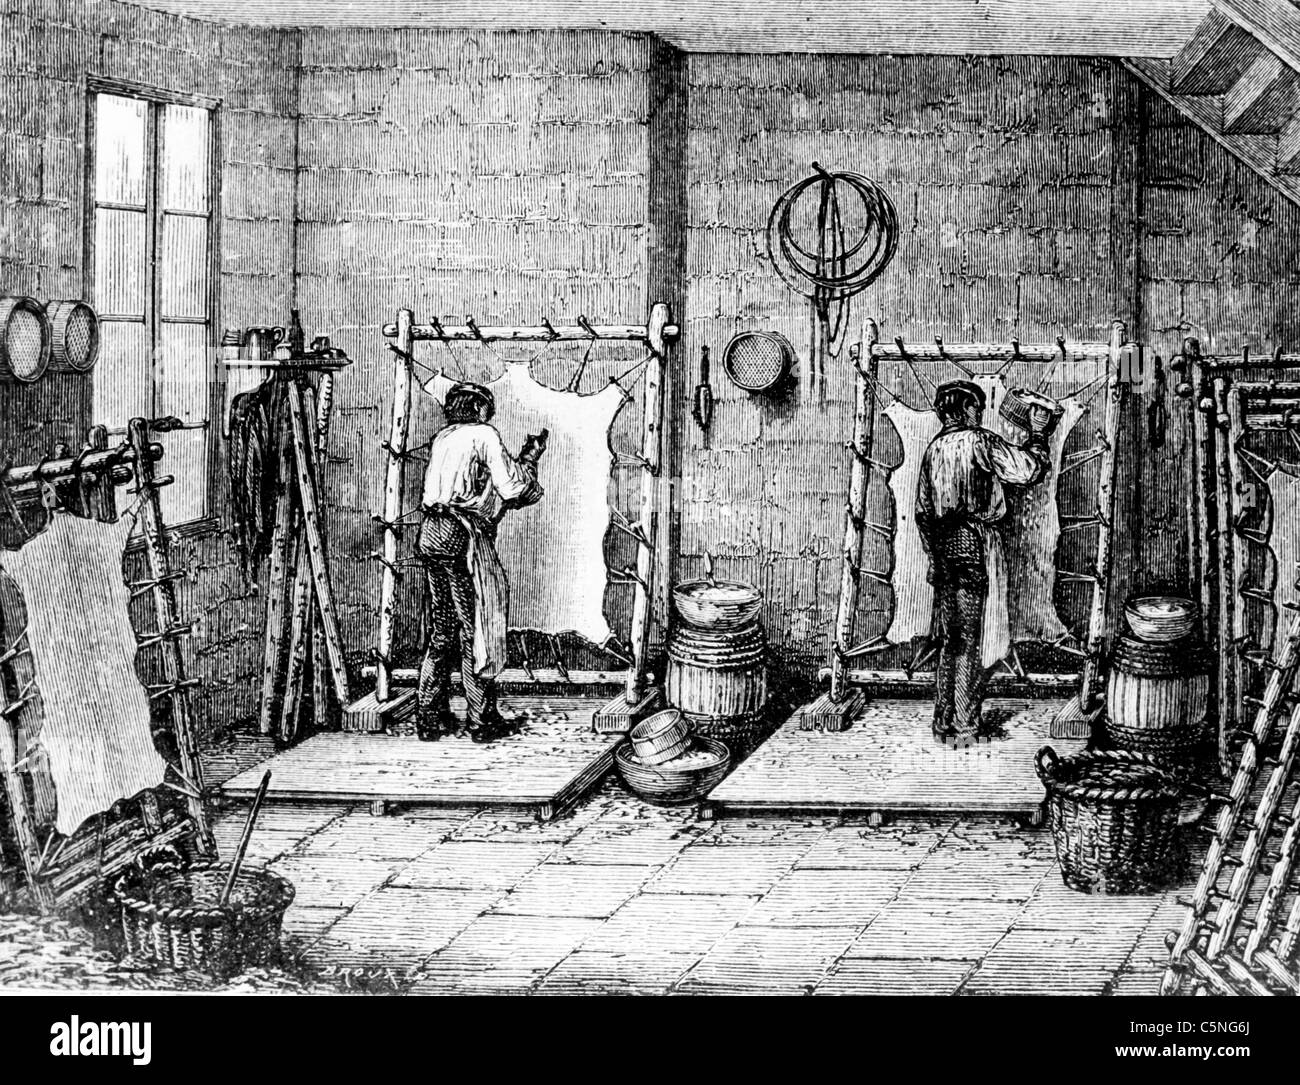 tannery in France, 1750 - Stock Image